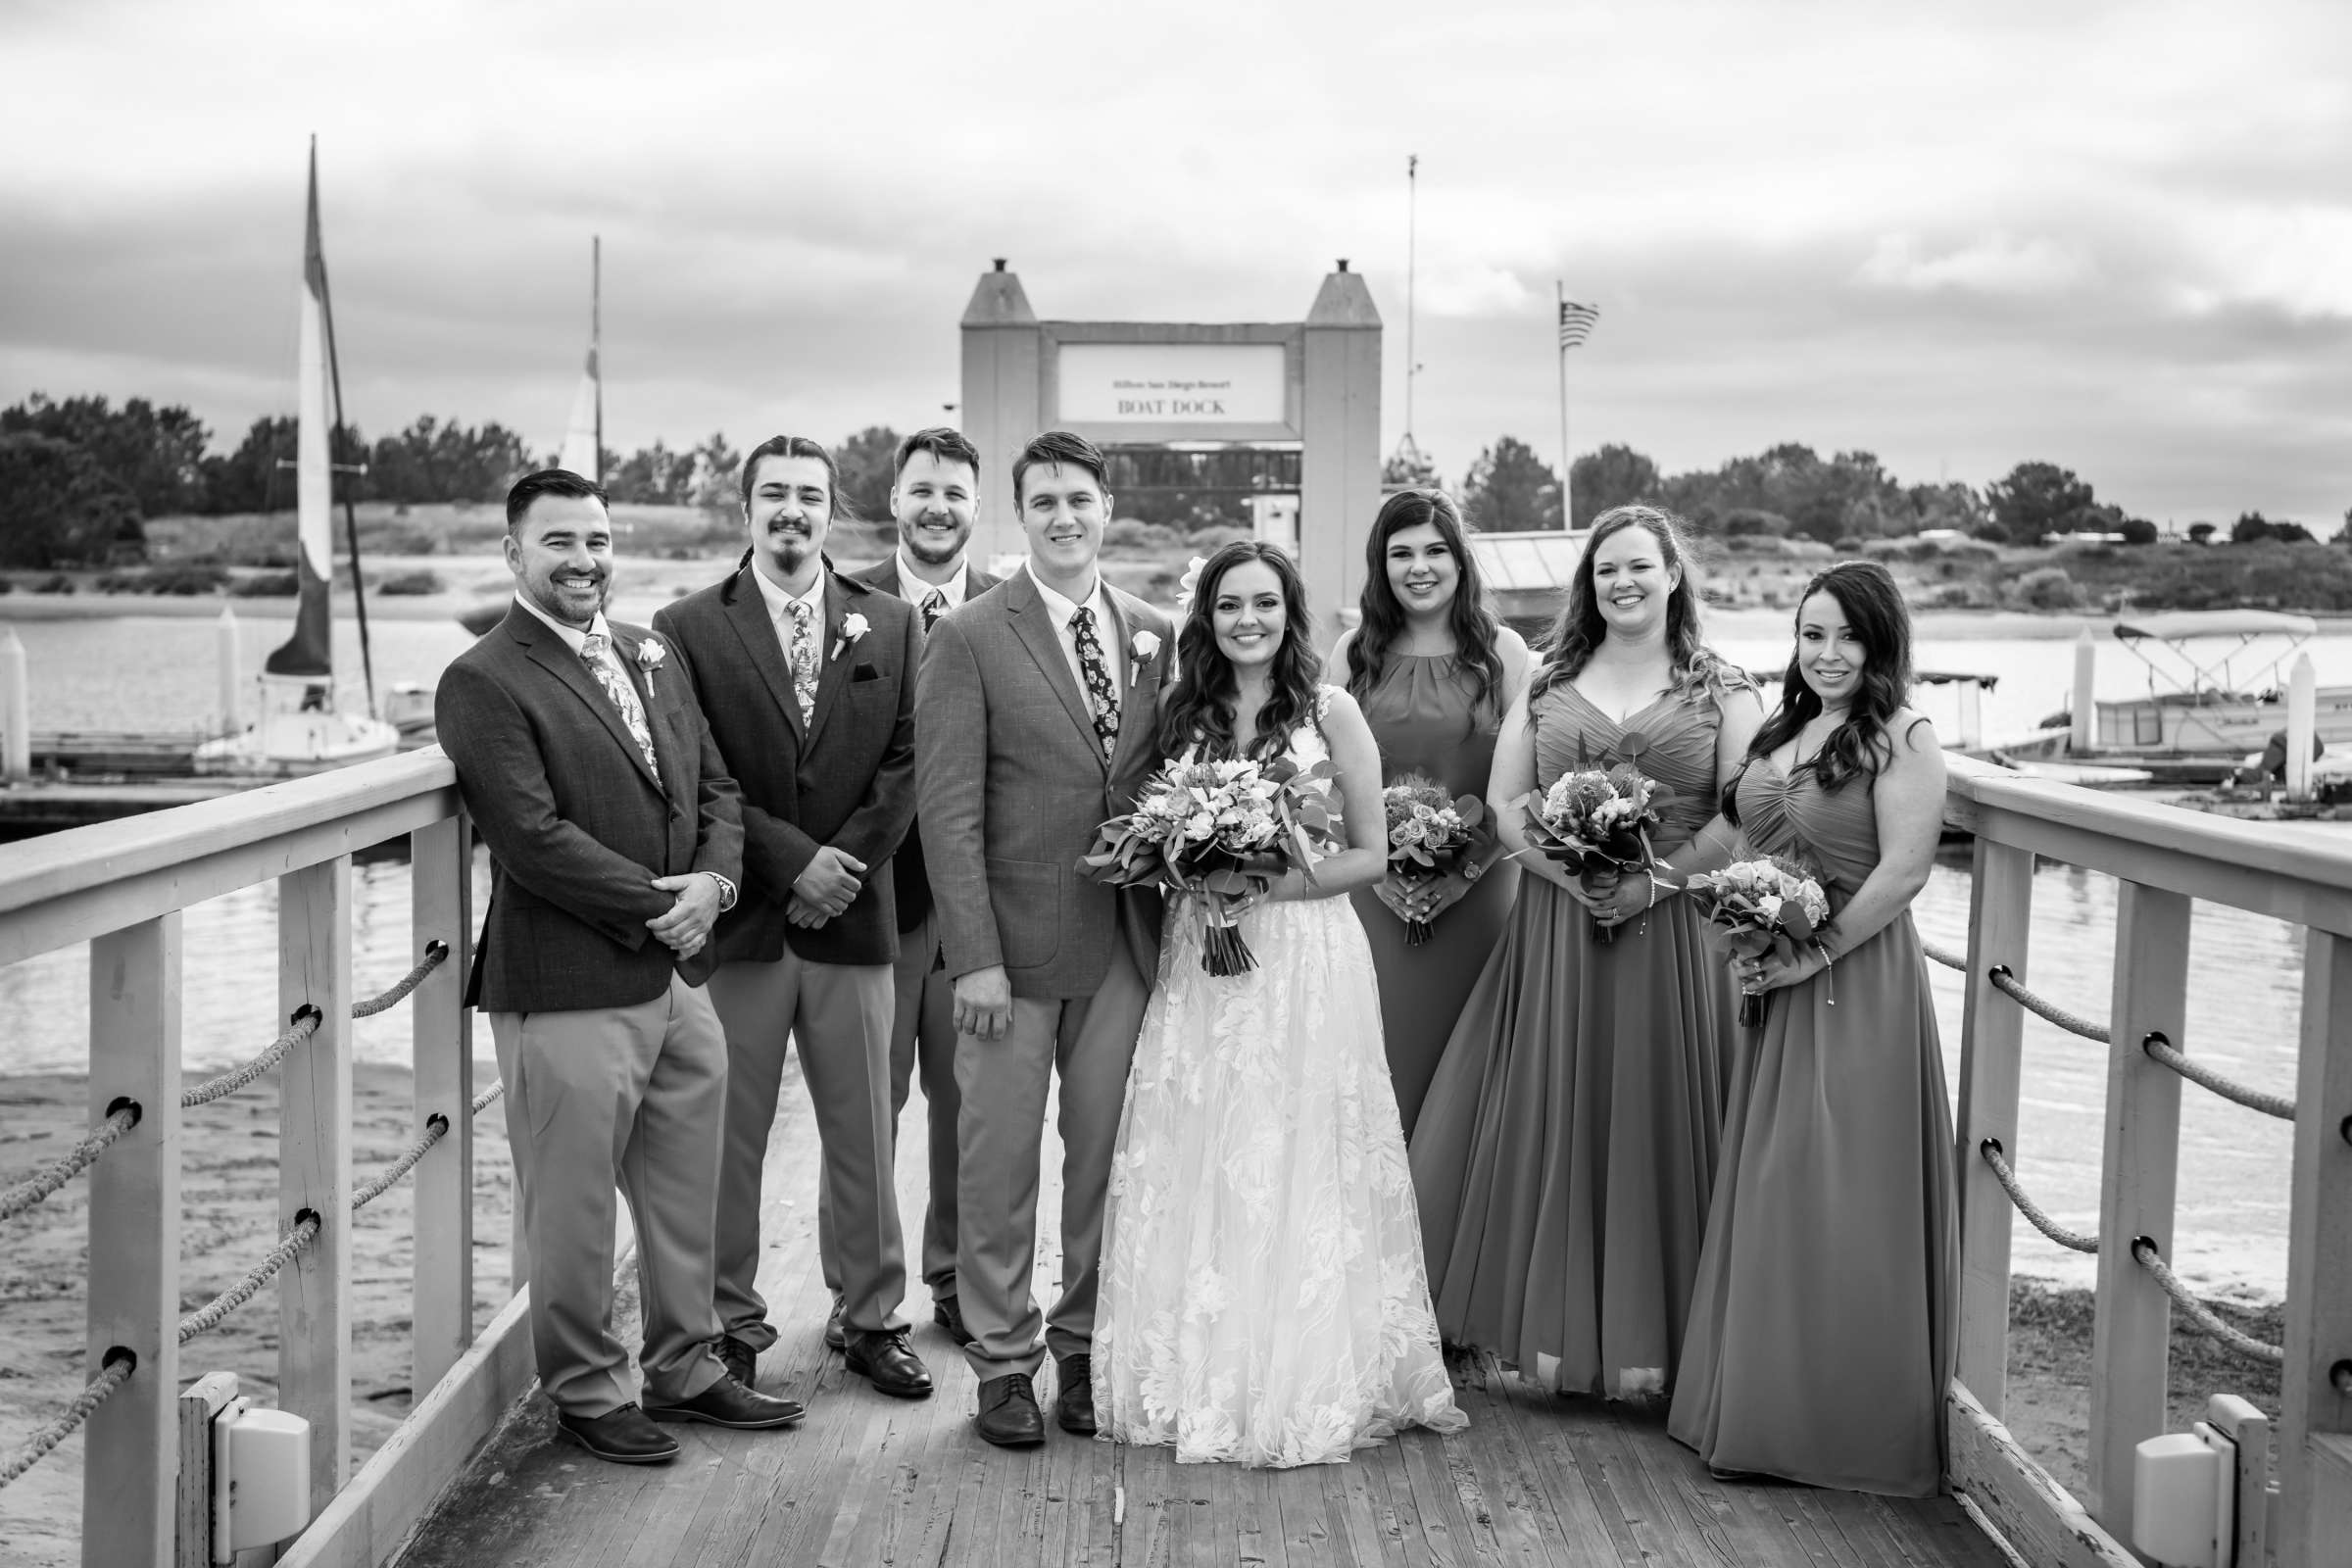 San Diego Mission Bay Resort Wedding coordinated by Cafe Au Love, Lauren and Adam Wedding Photo #111 by True Photography